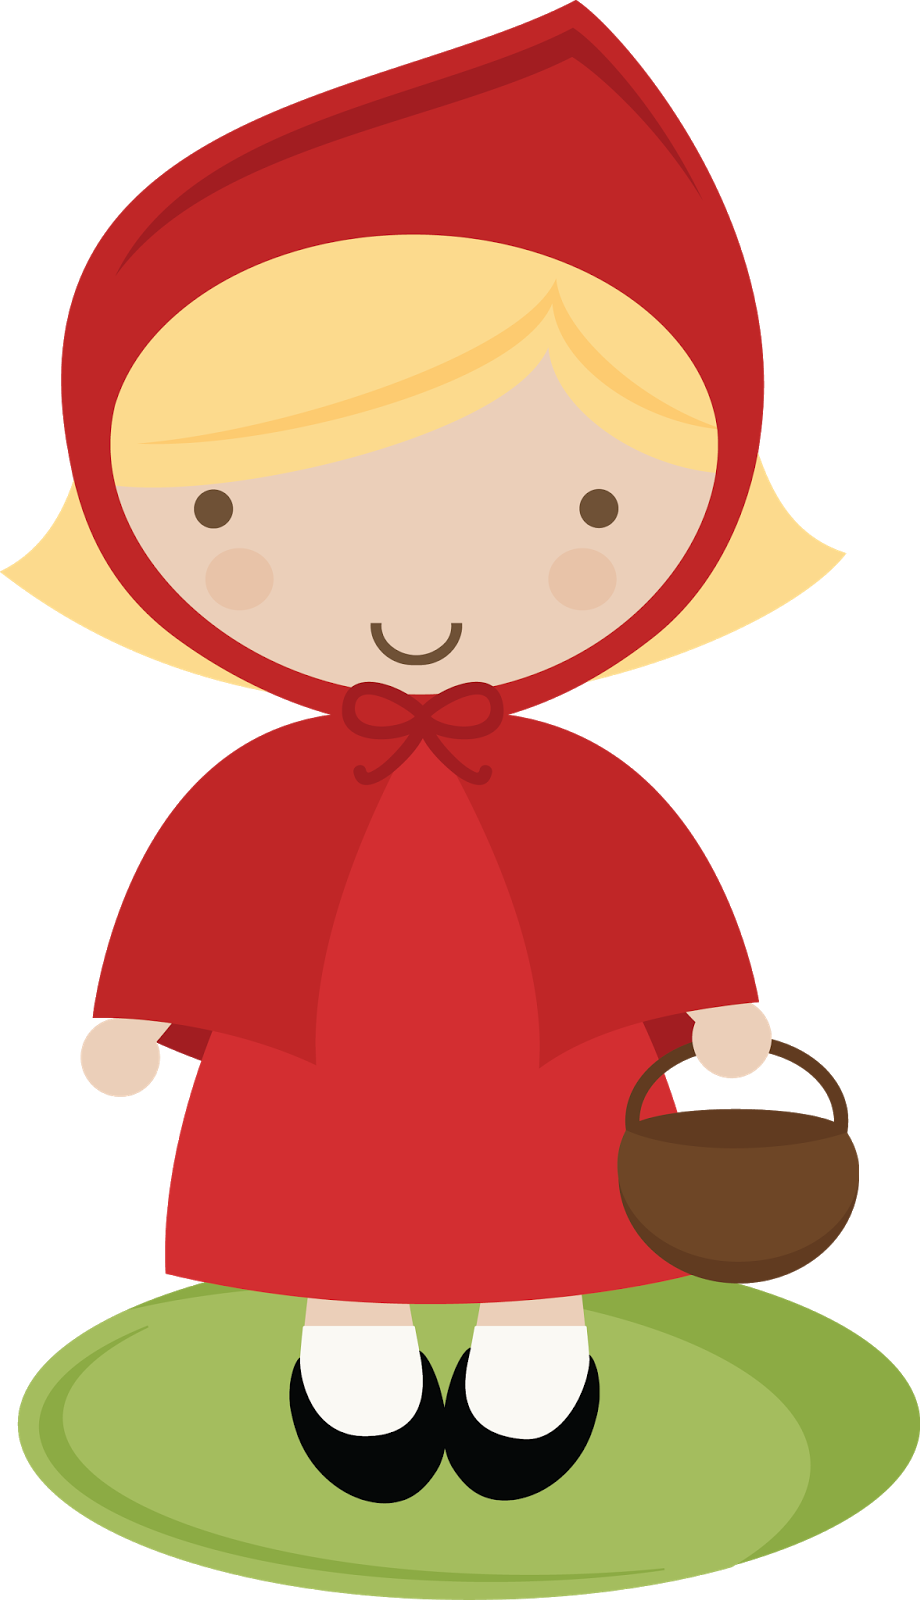 little red riding hood template clipart best blondie s fairy rh pinterest com little red riding hood clipart little red riding hood clipart black and white